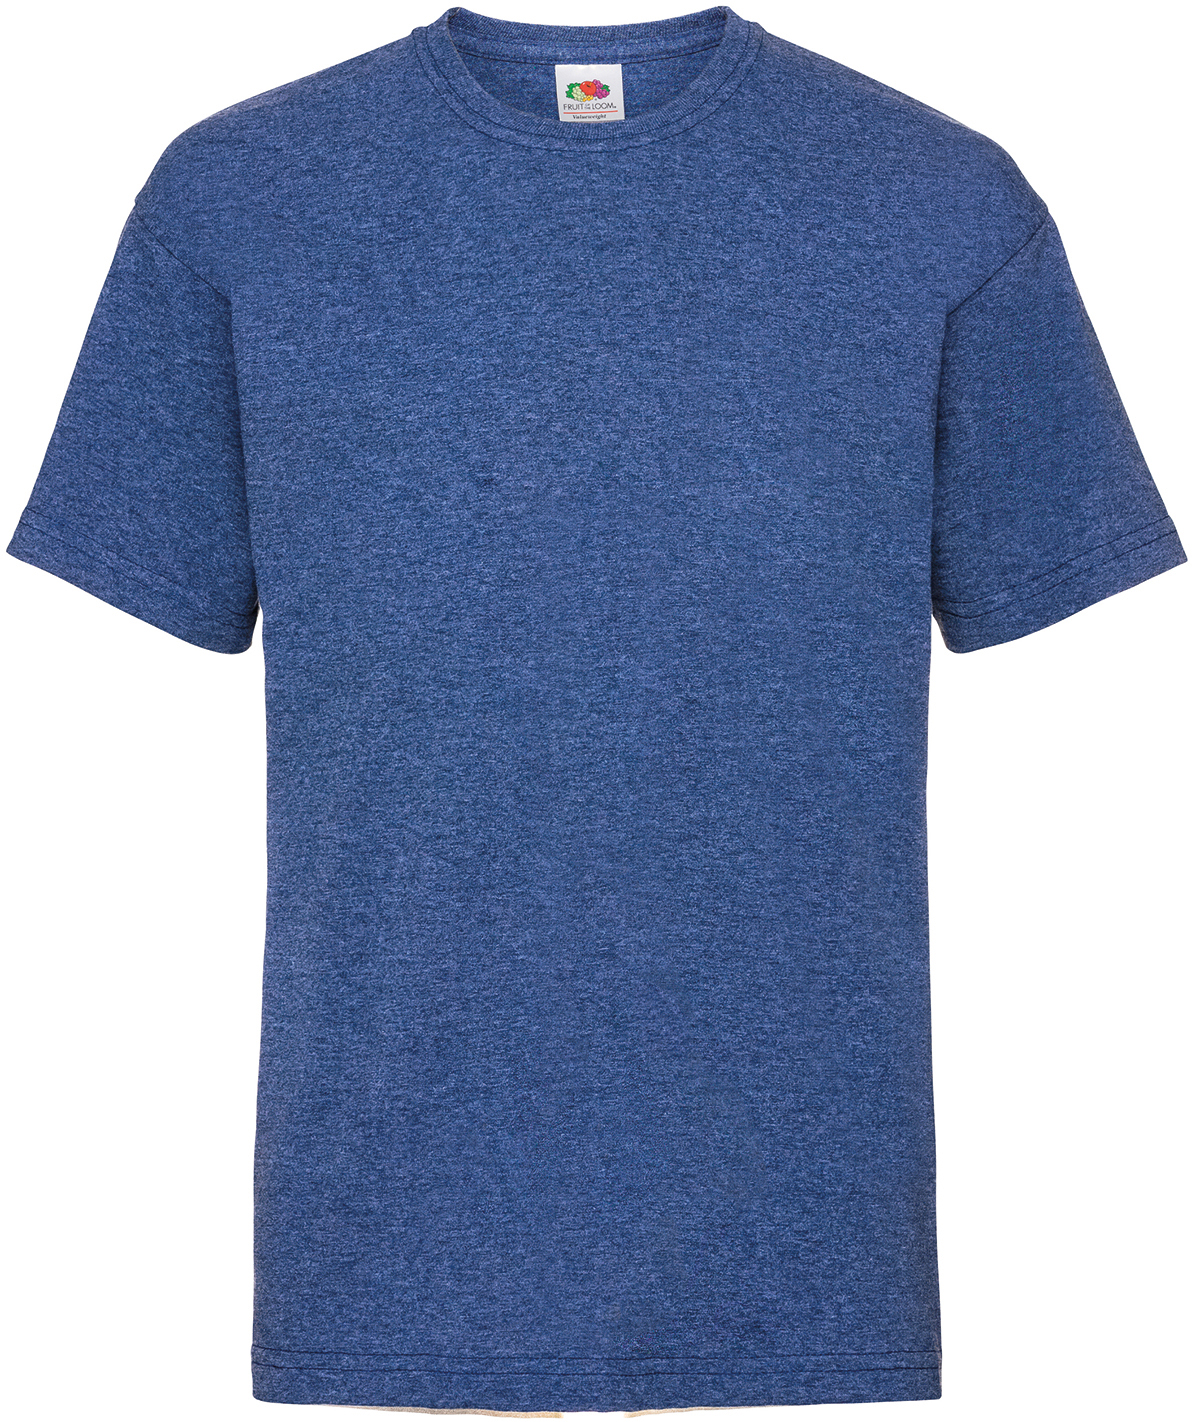 Fruit-of-the-Loom-Valueweight-T-Kids-T-Shirt-FOL